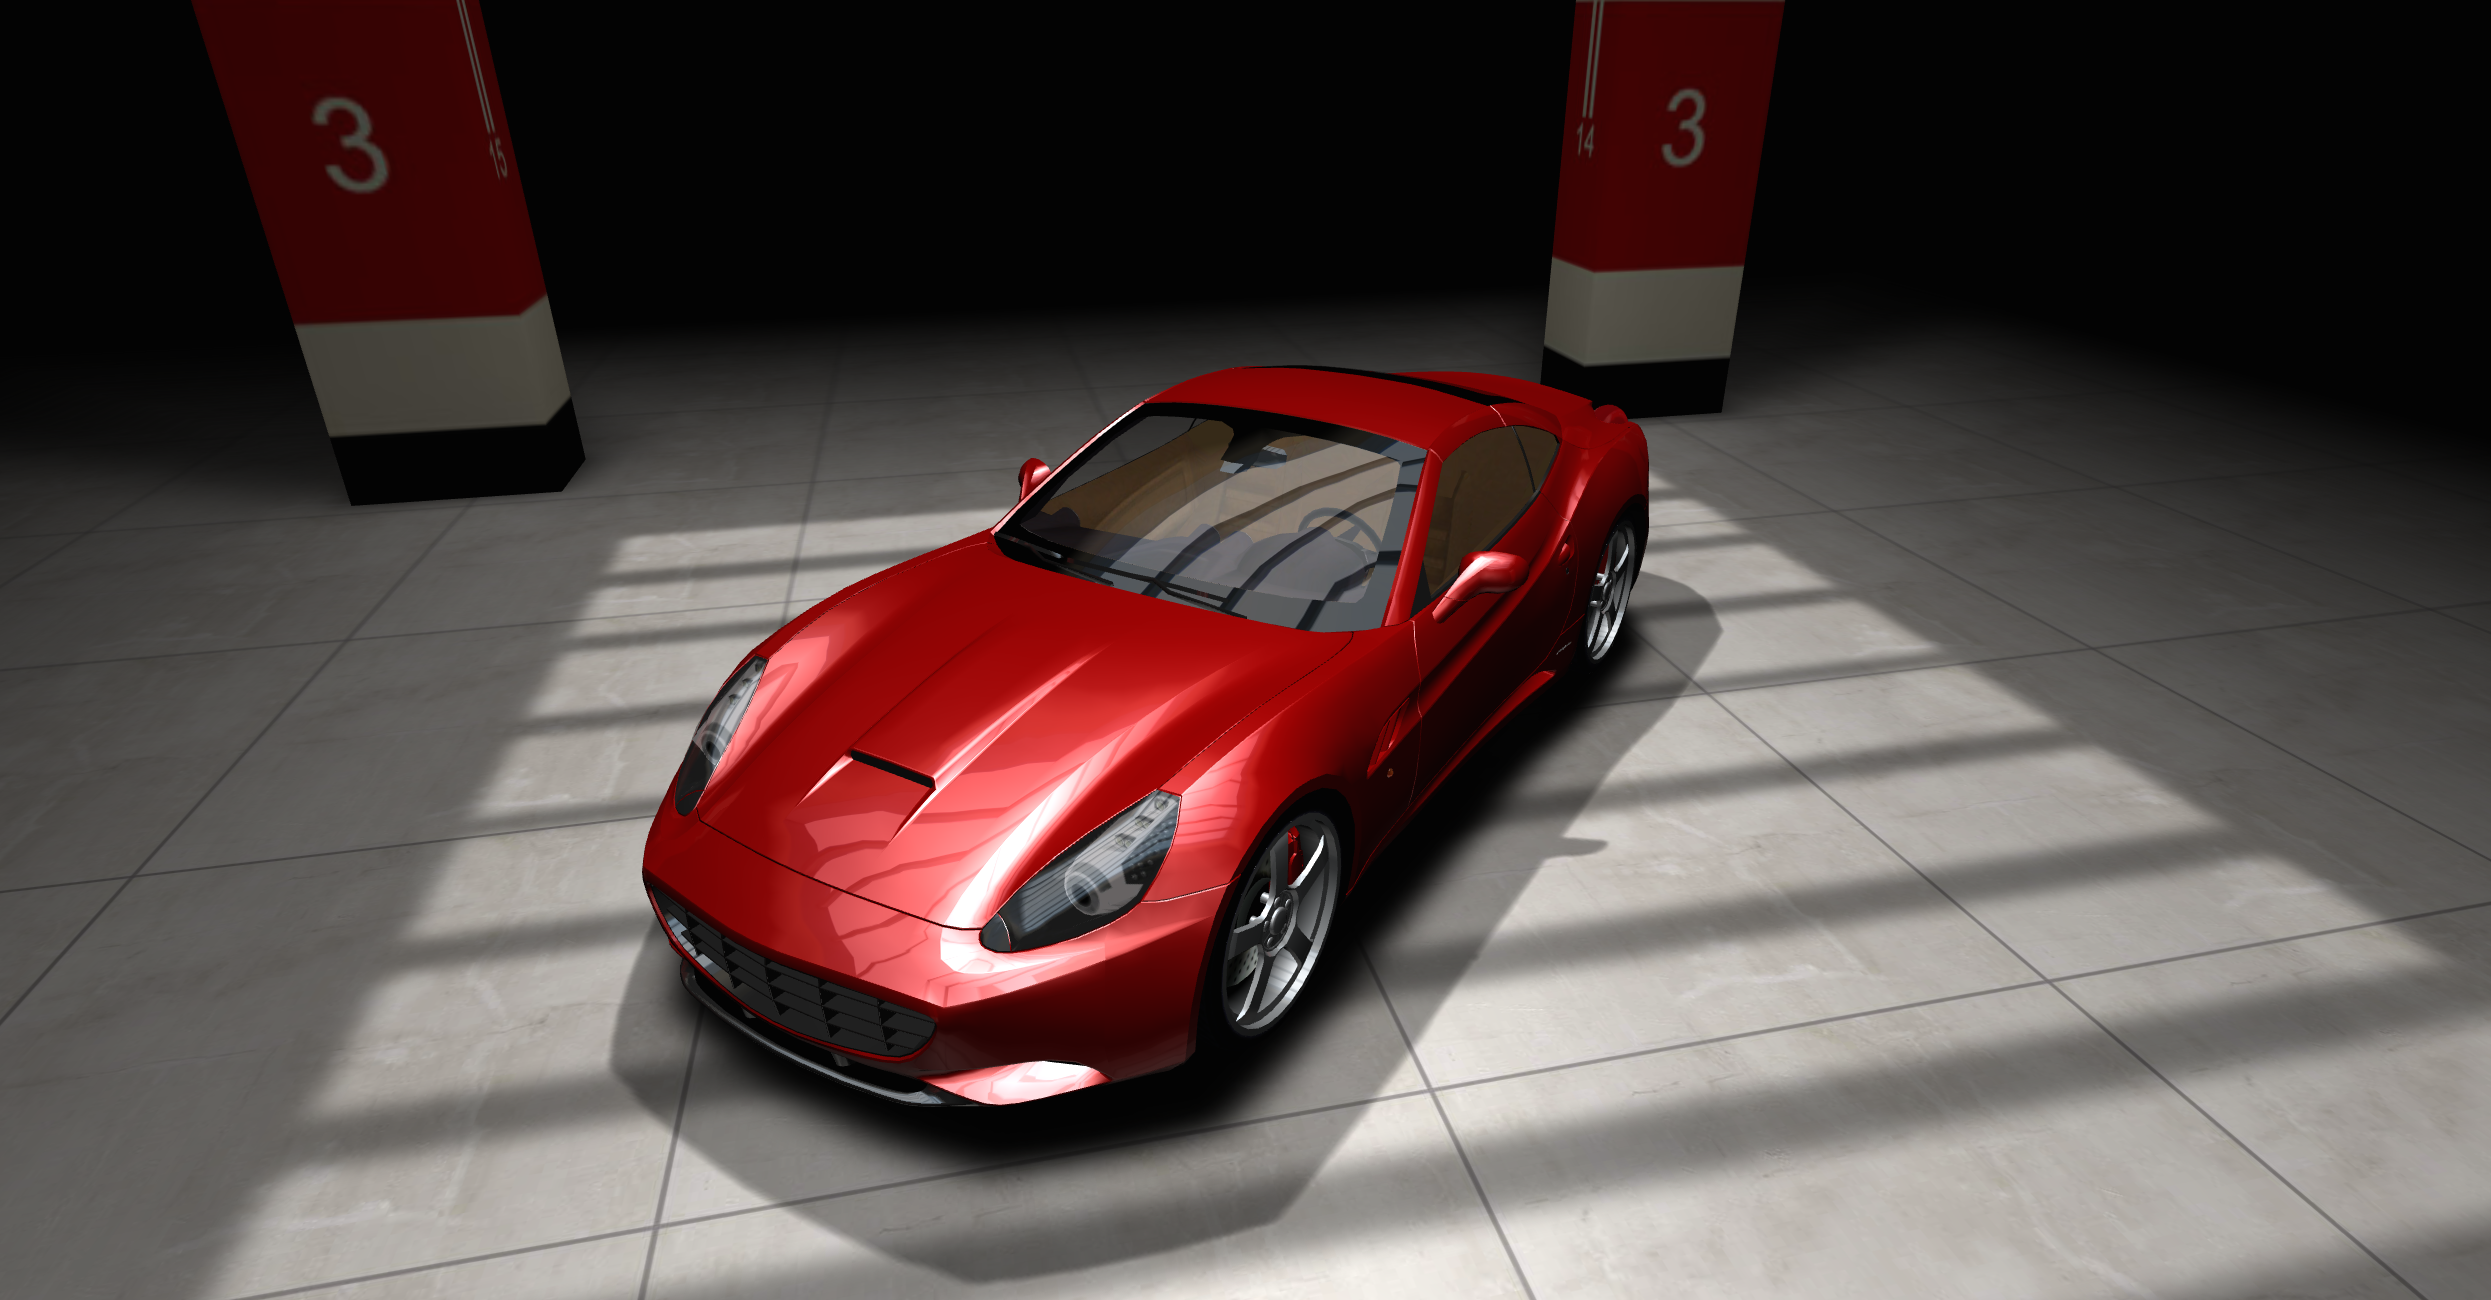 Car Visualizer application by Plus 360 Degrees, ported to run on top of Qt Canvas3D.